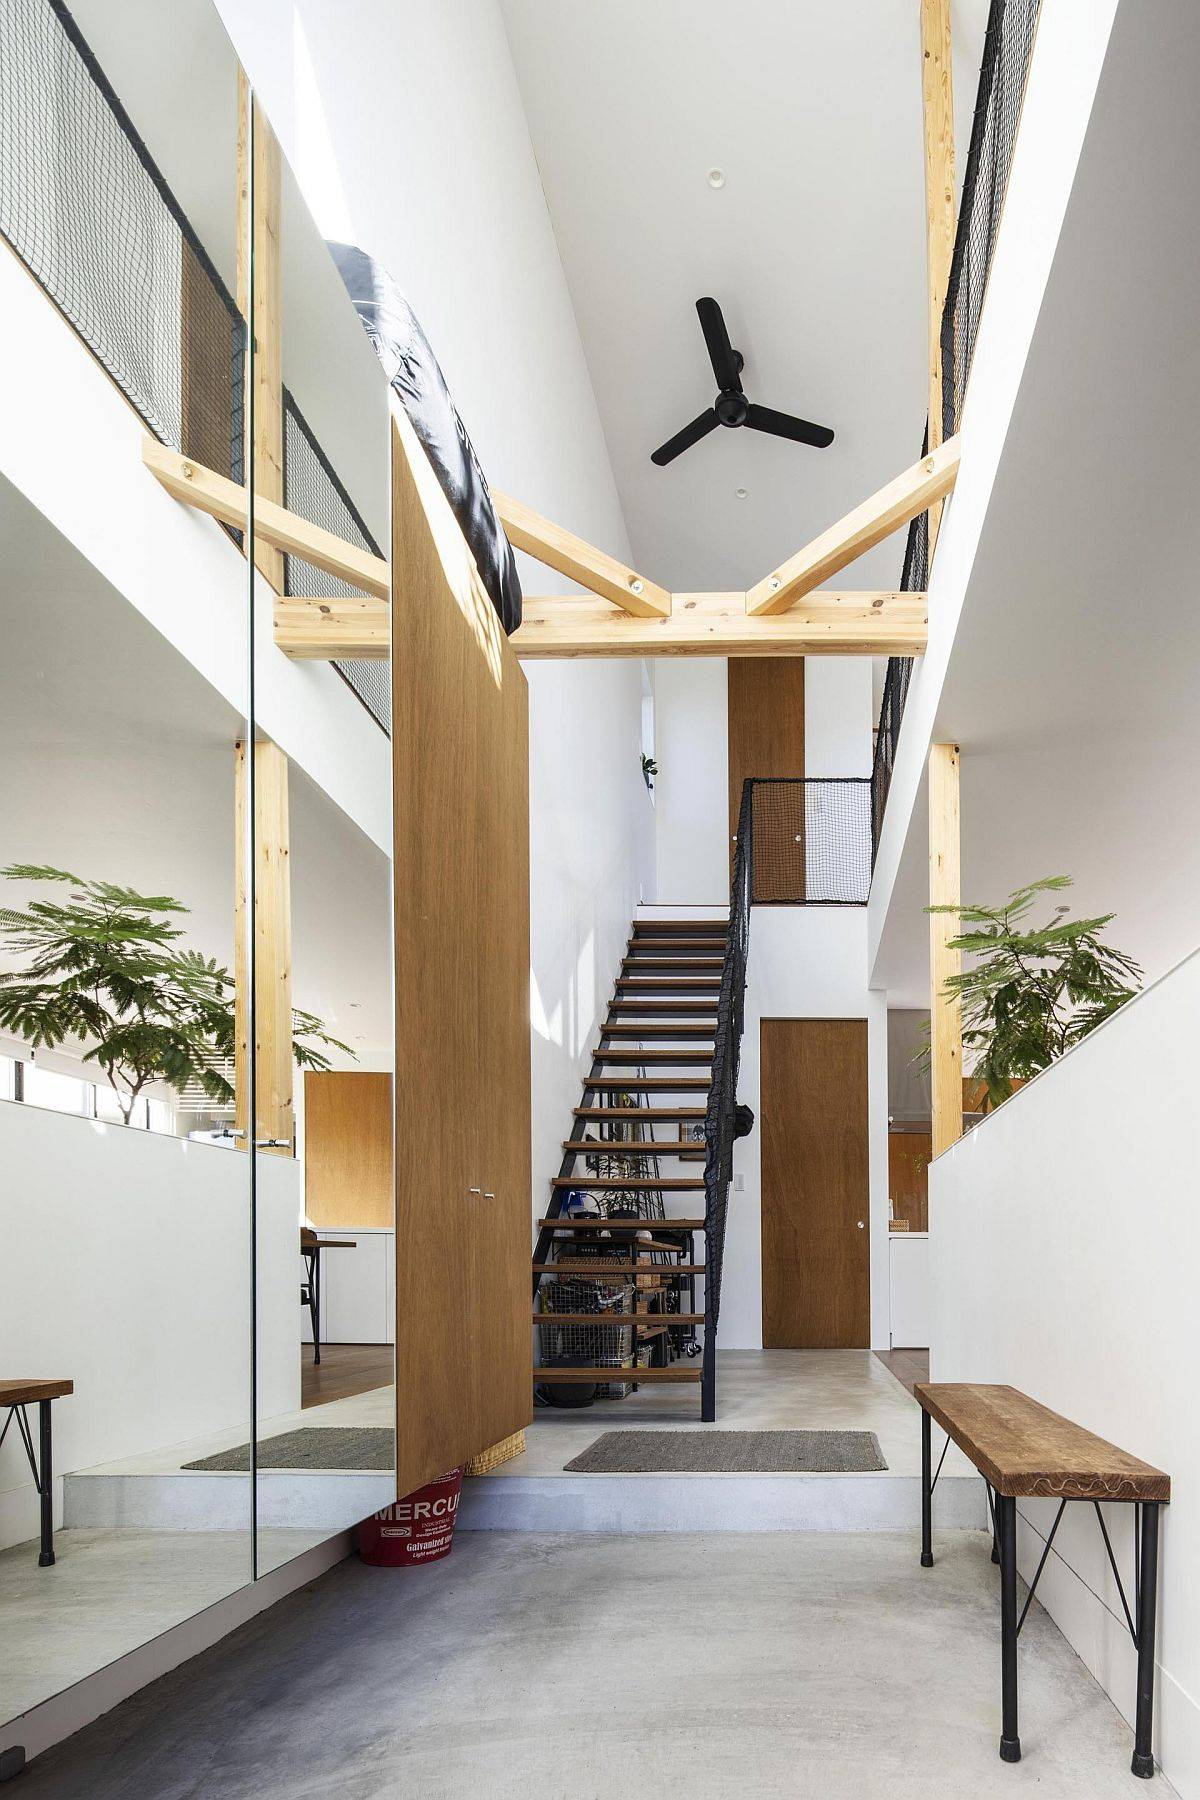 Spacious double-height entrance and interior of the modern Japanese home